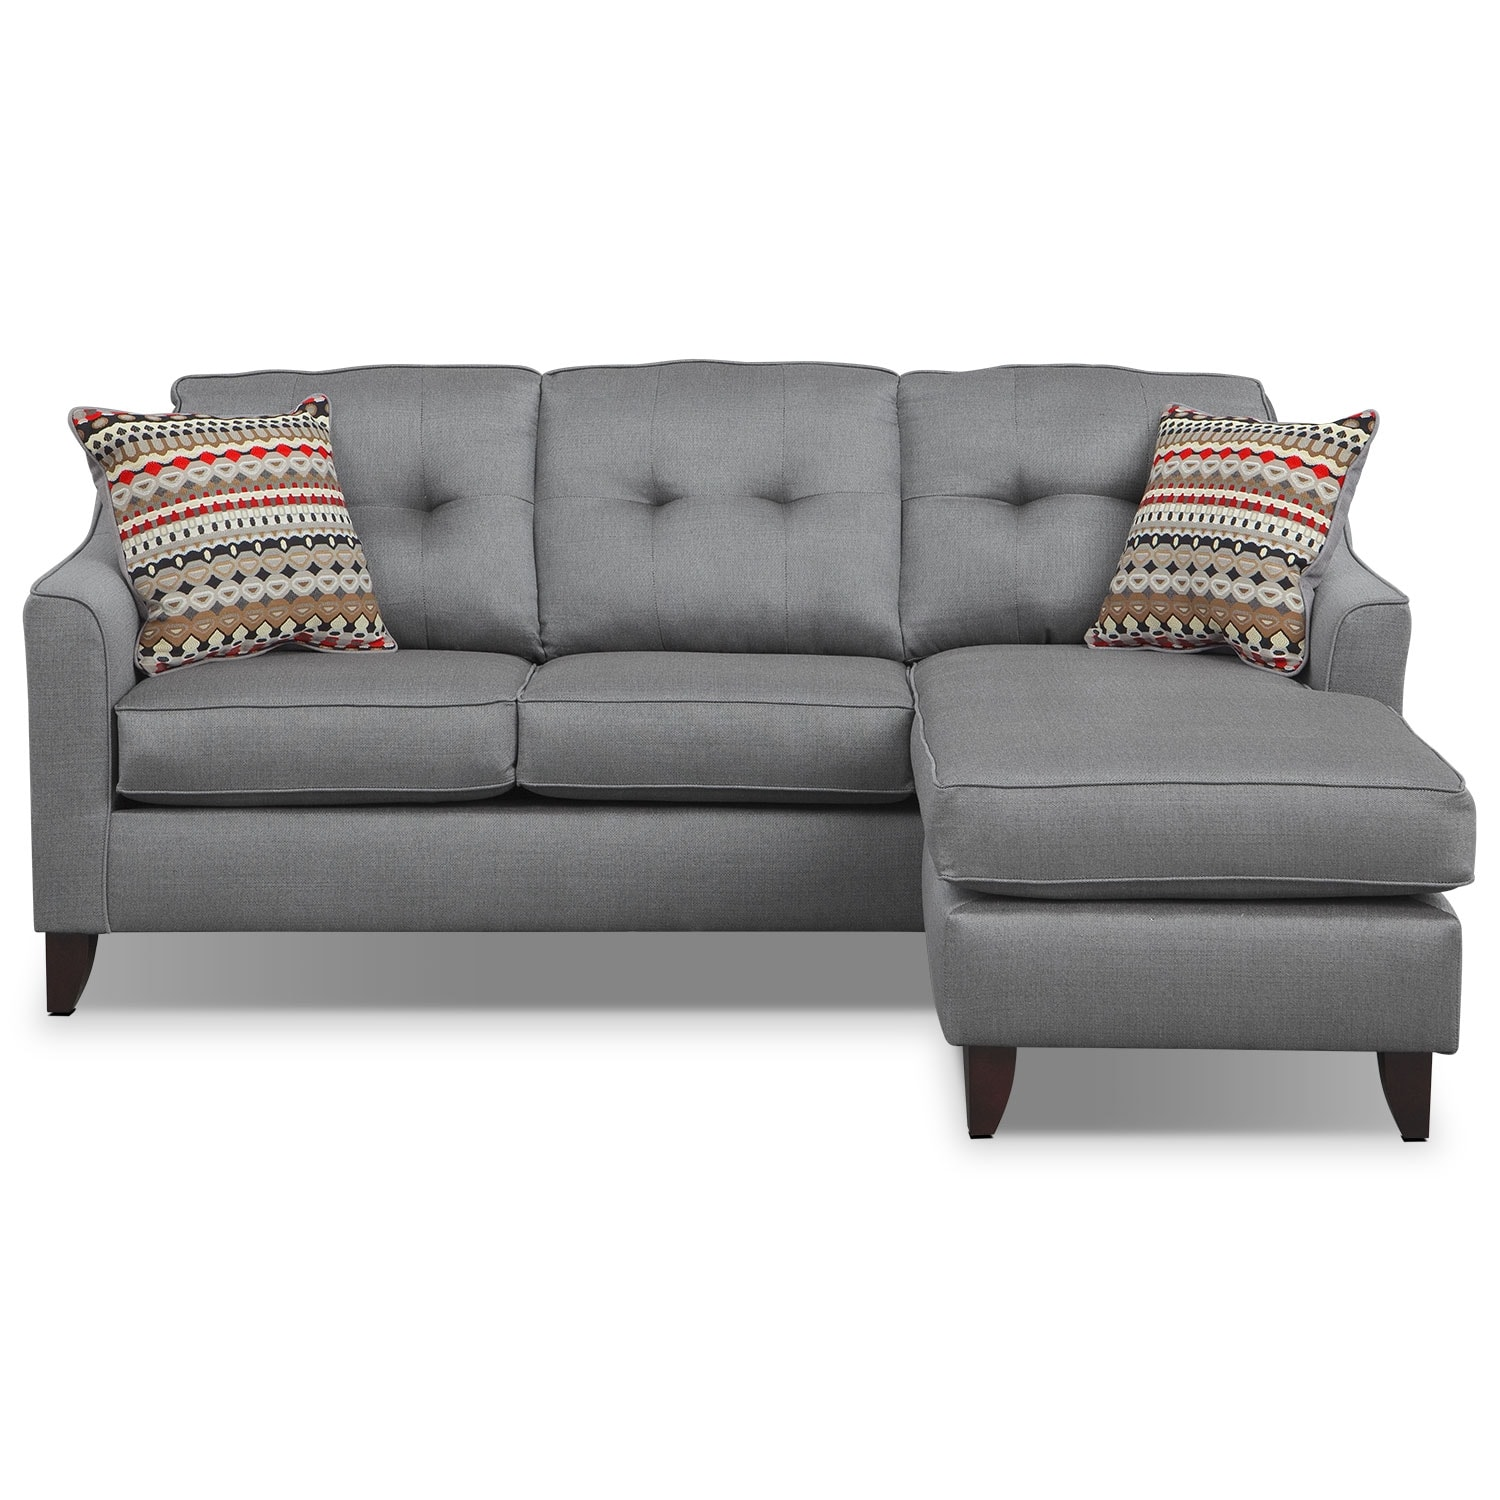 Marco gray chaise sofa by factory outlet reviews sofa for American signature furniture commercial chaise